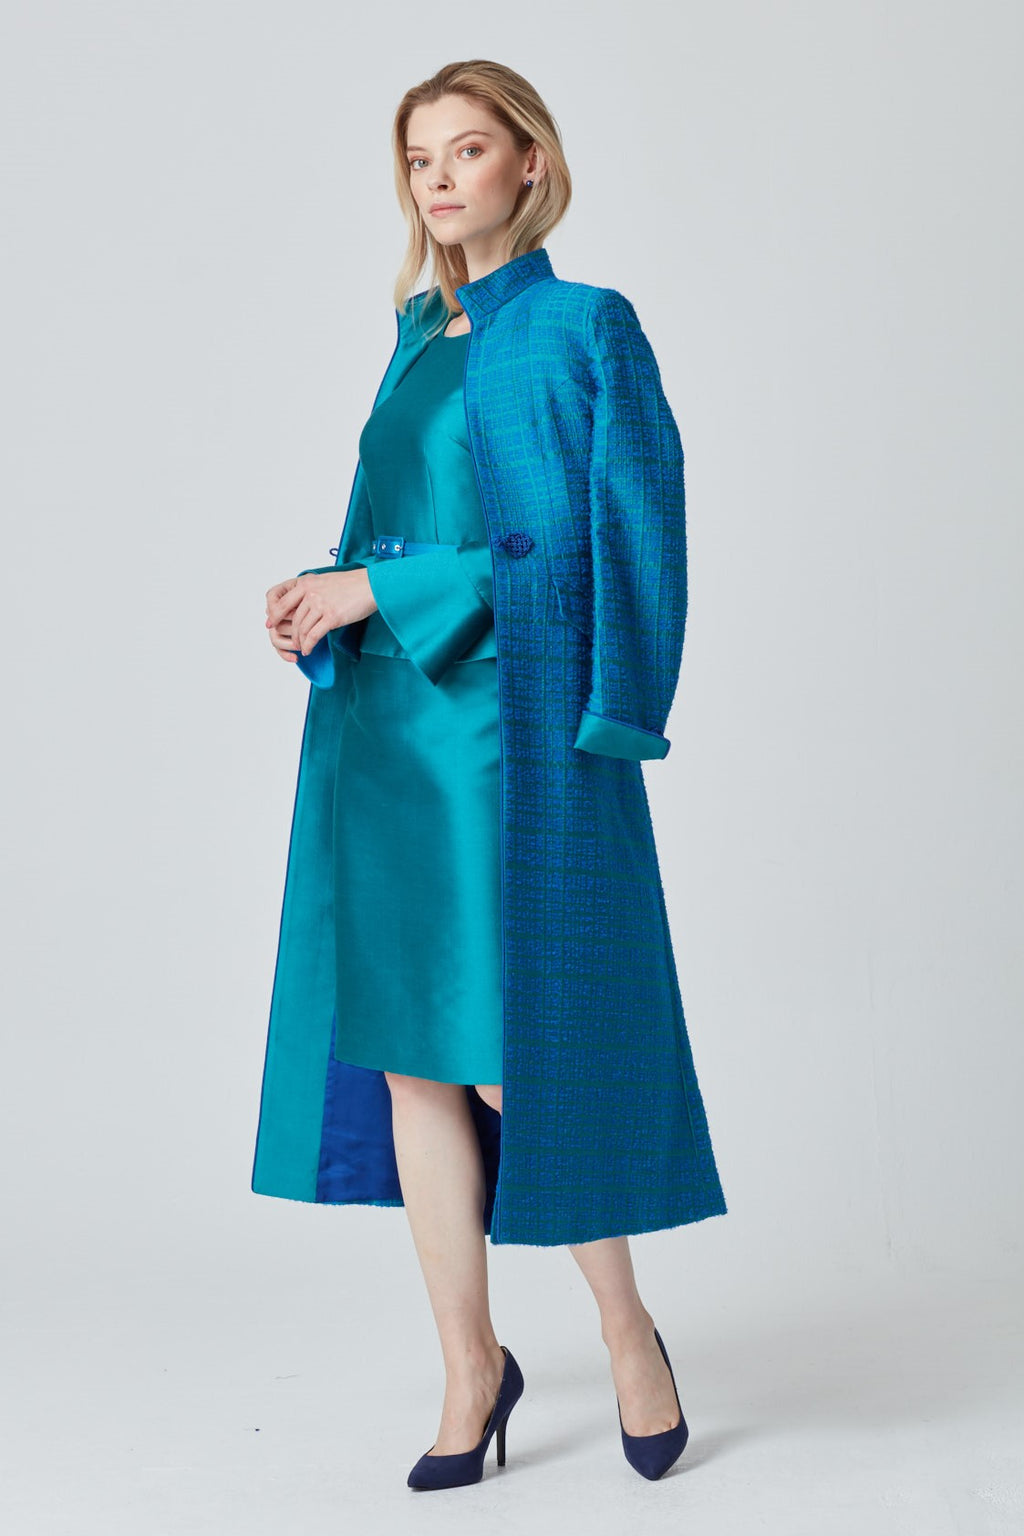 Midi Length Silk Dress Coat in Emerald Silk Jacquard - Vanessa